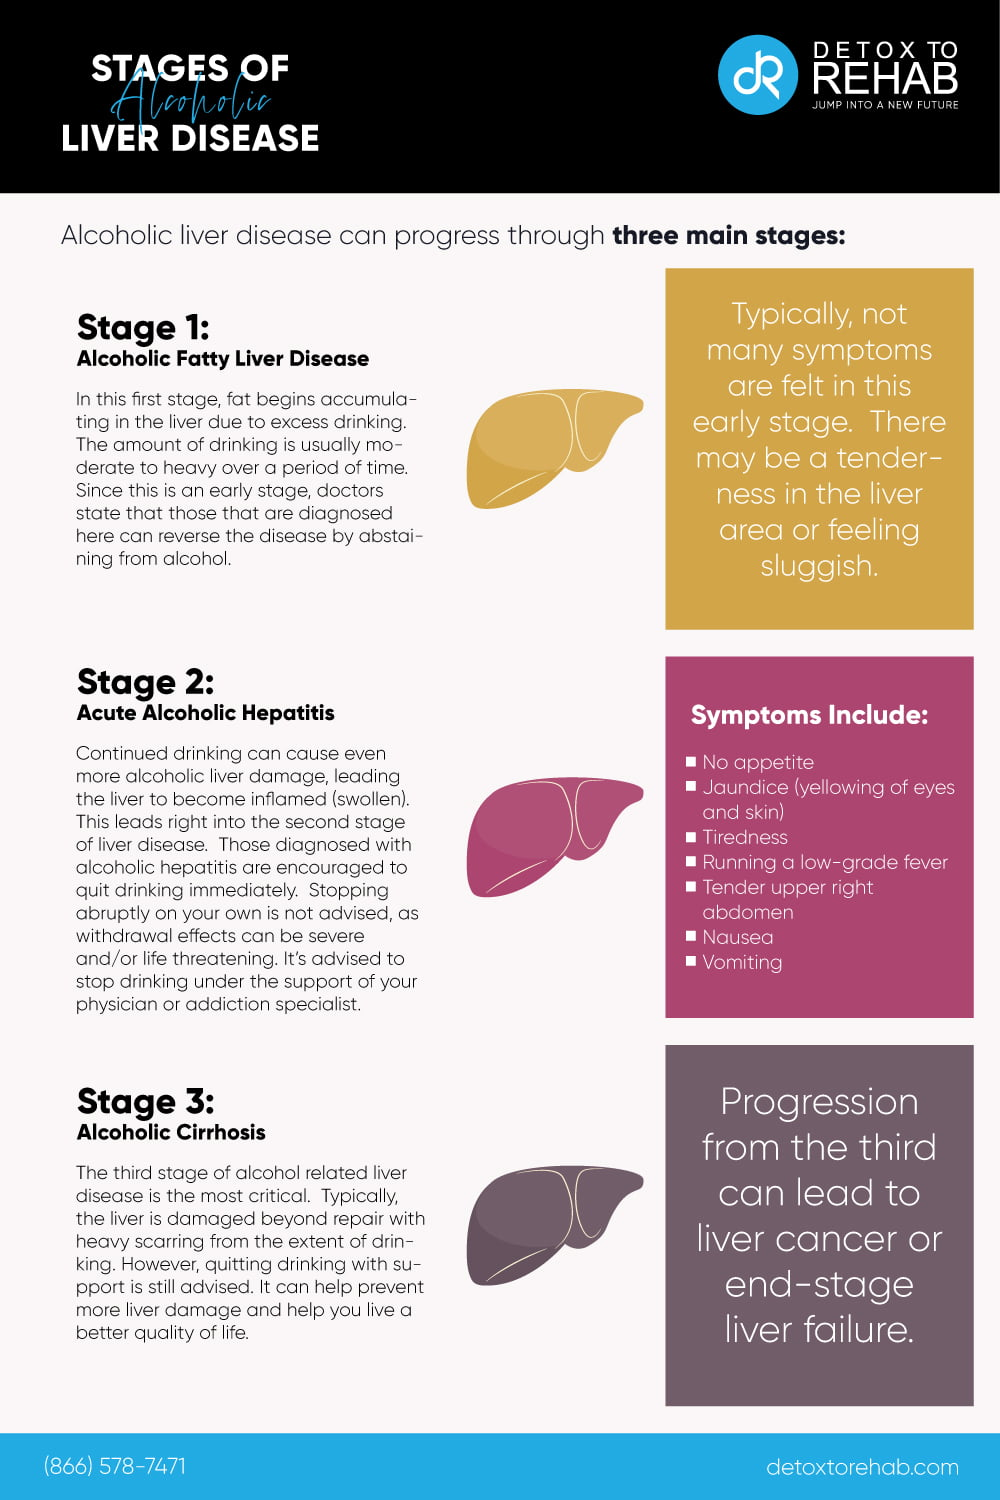 stages of alcoholic liver disease infographic